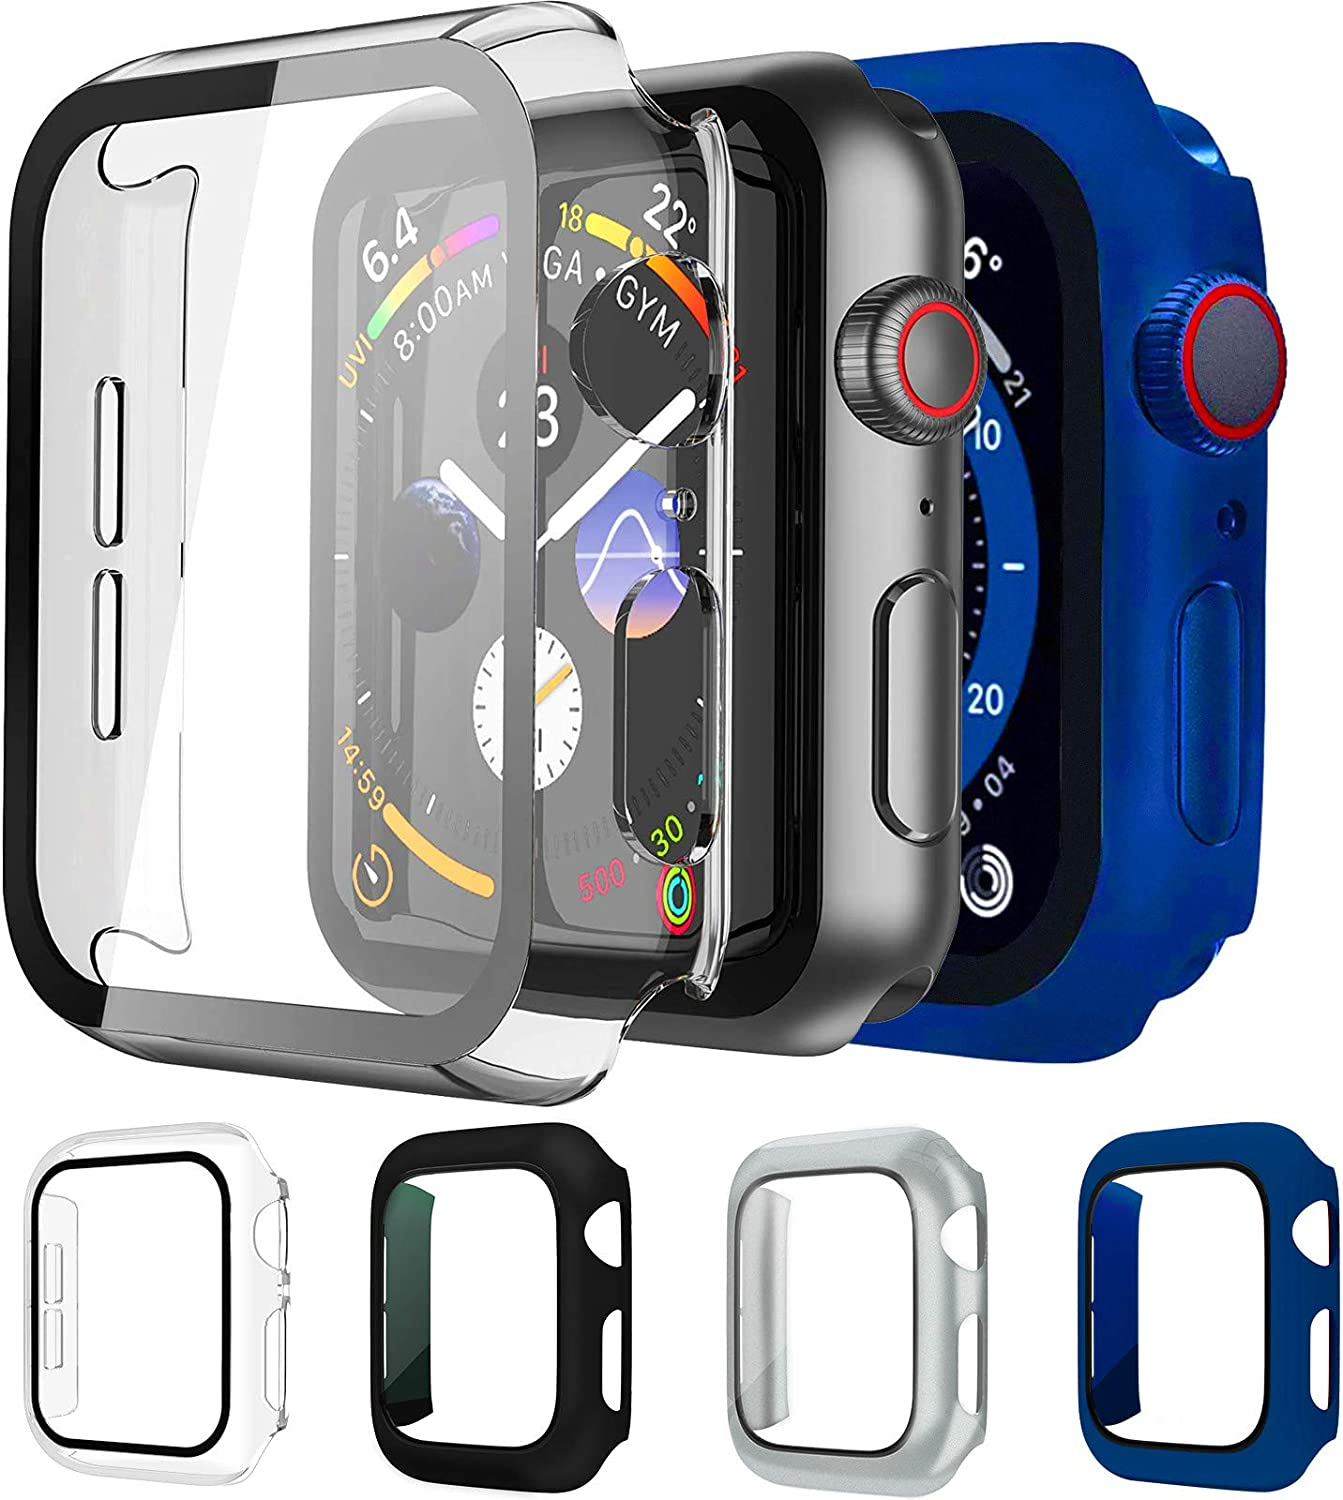 Mocodi 4-Pack Apple Watch Case 44mm with Built in PC Tempered Glass Screen Protector,Slim Bumper Accessories for Apple Watch Series 4 & 5 & 6 and Apple Watch SE 44mm(Black+Silver+Clear+Midnight Blue)